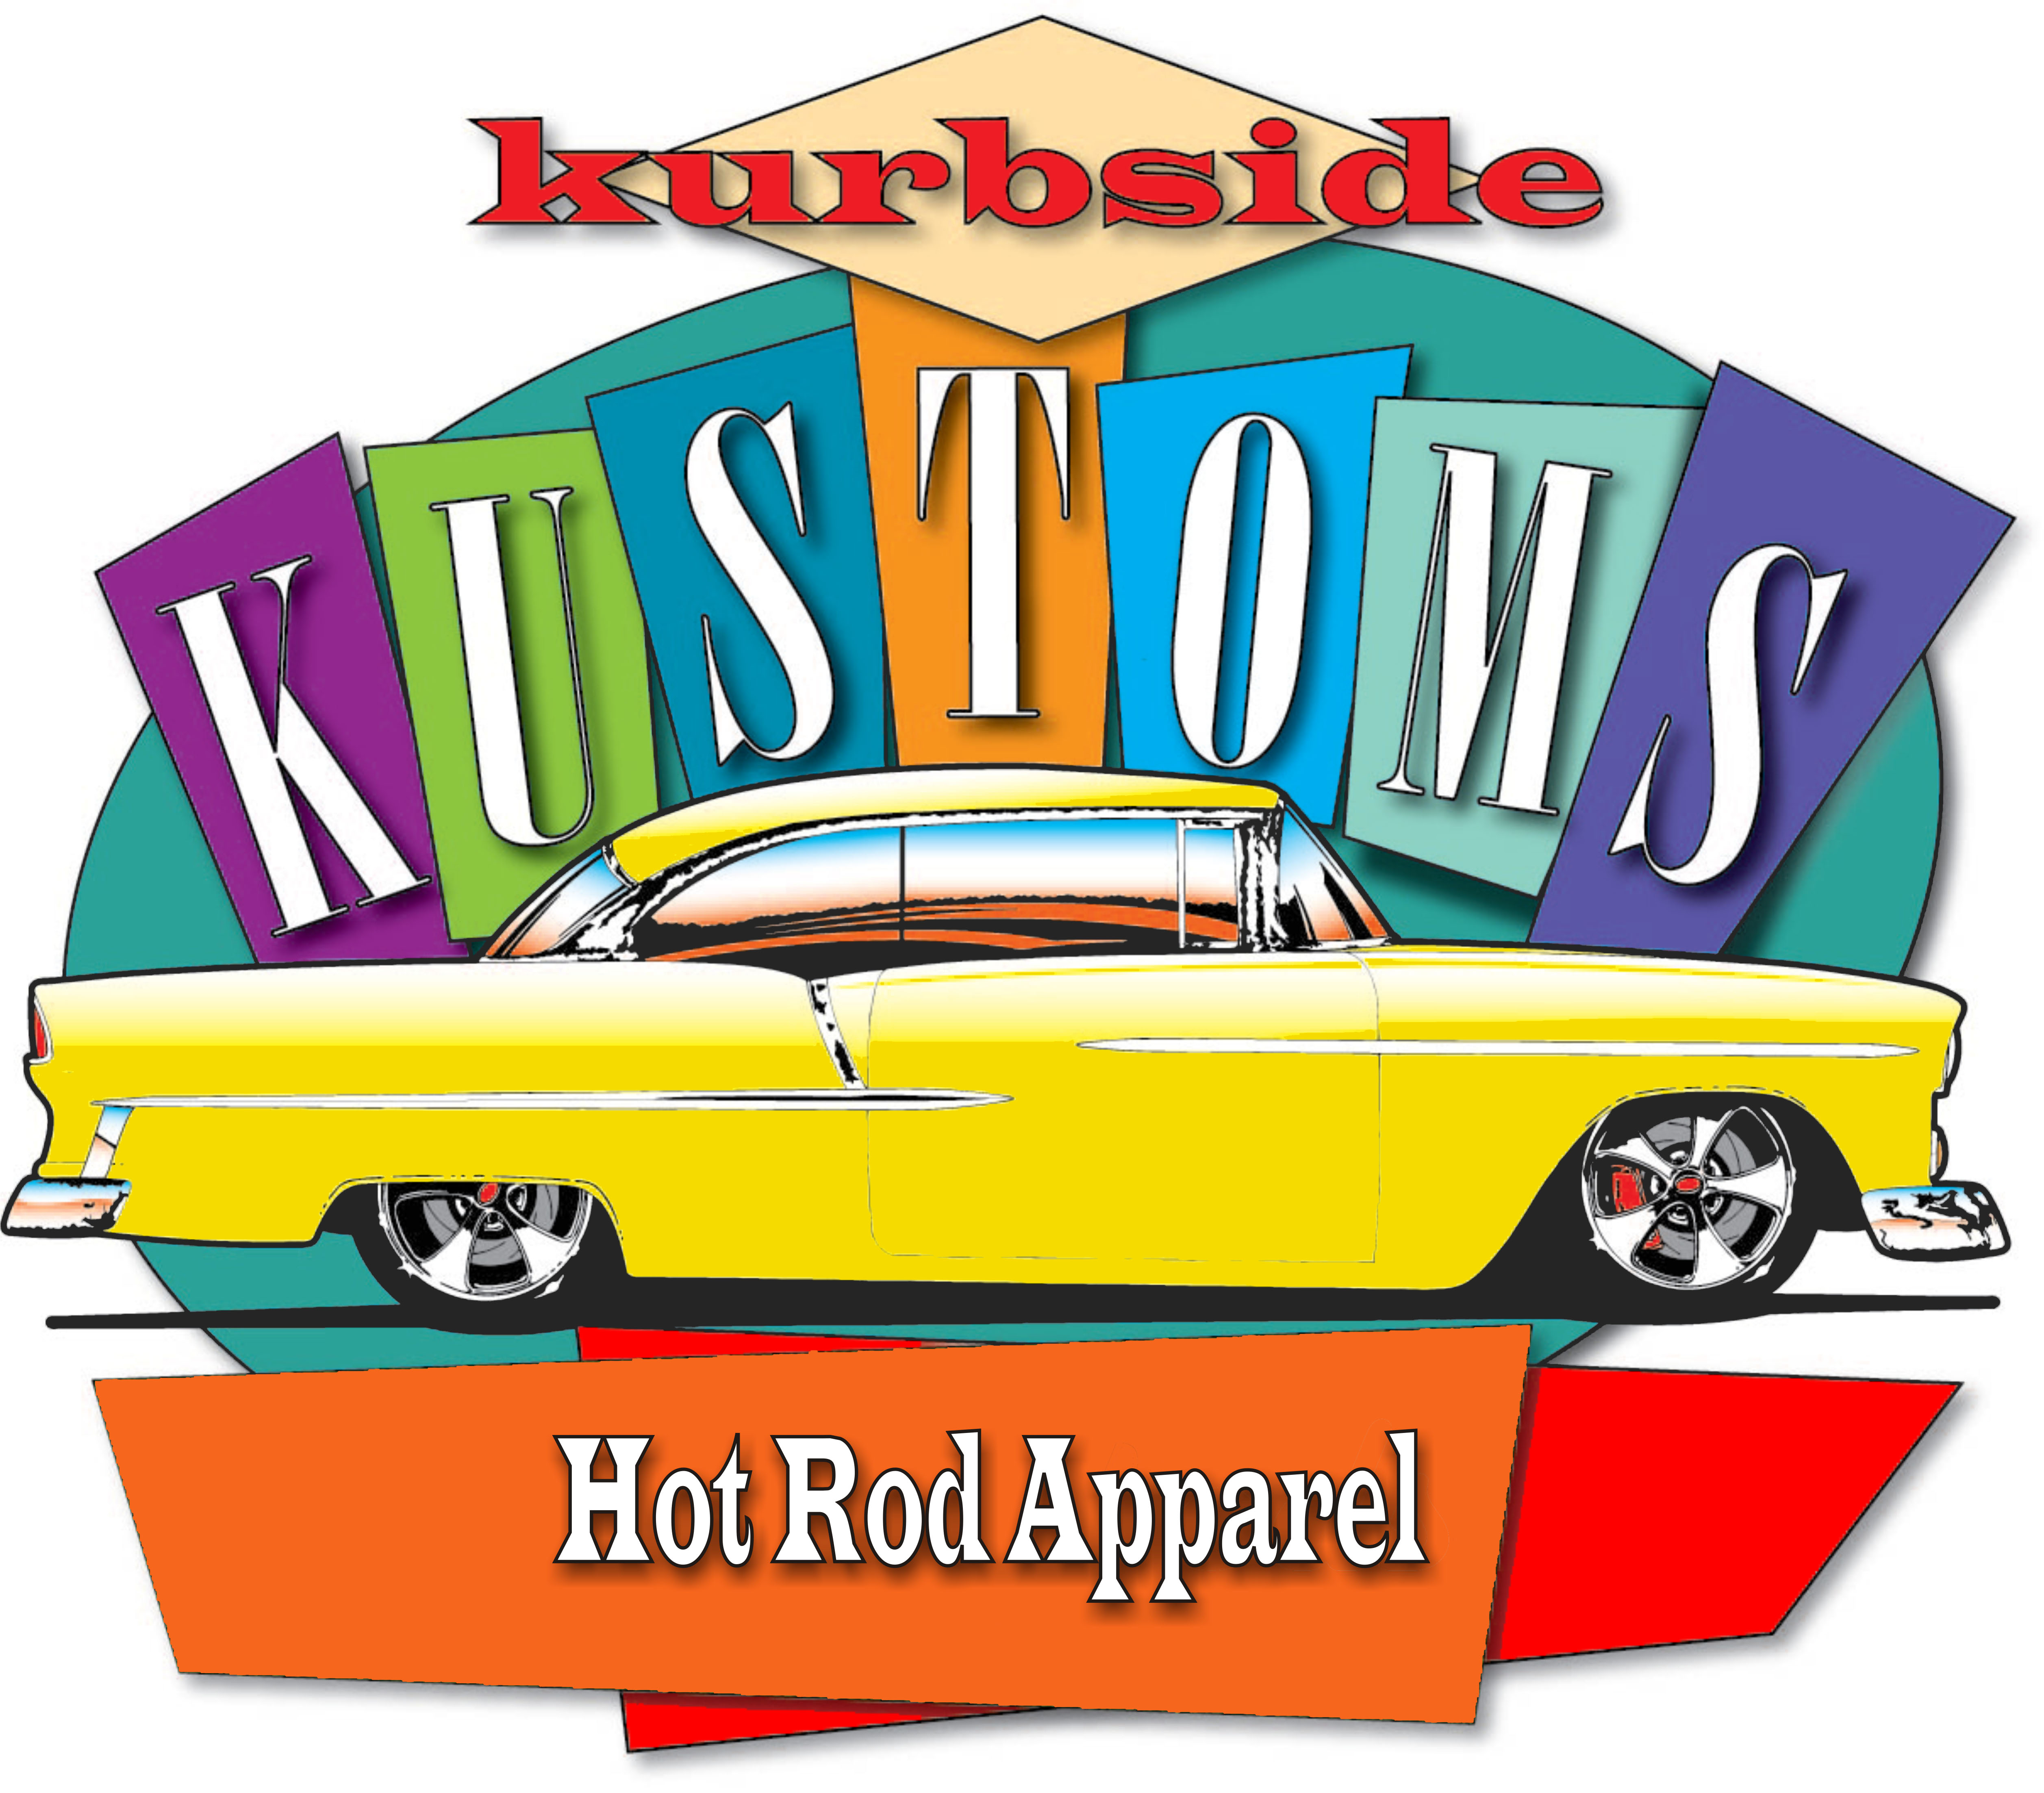 Kurbside Kustoms